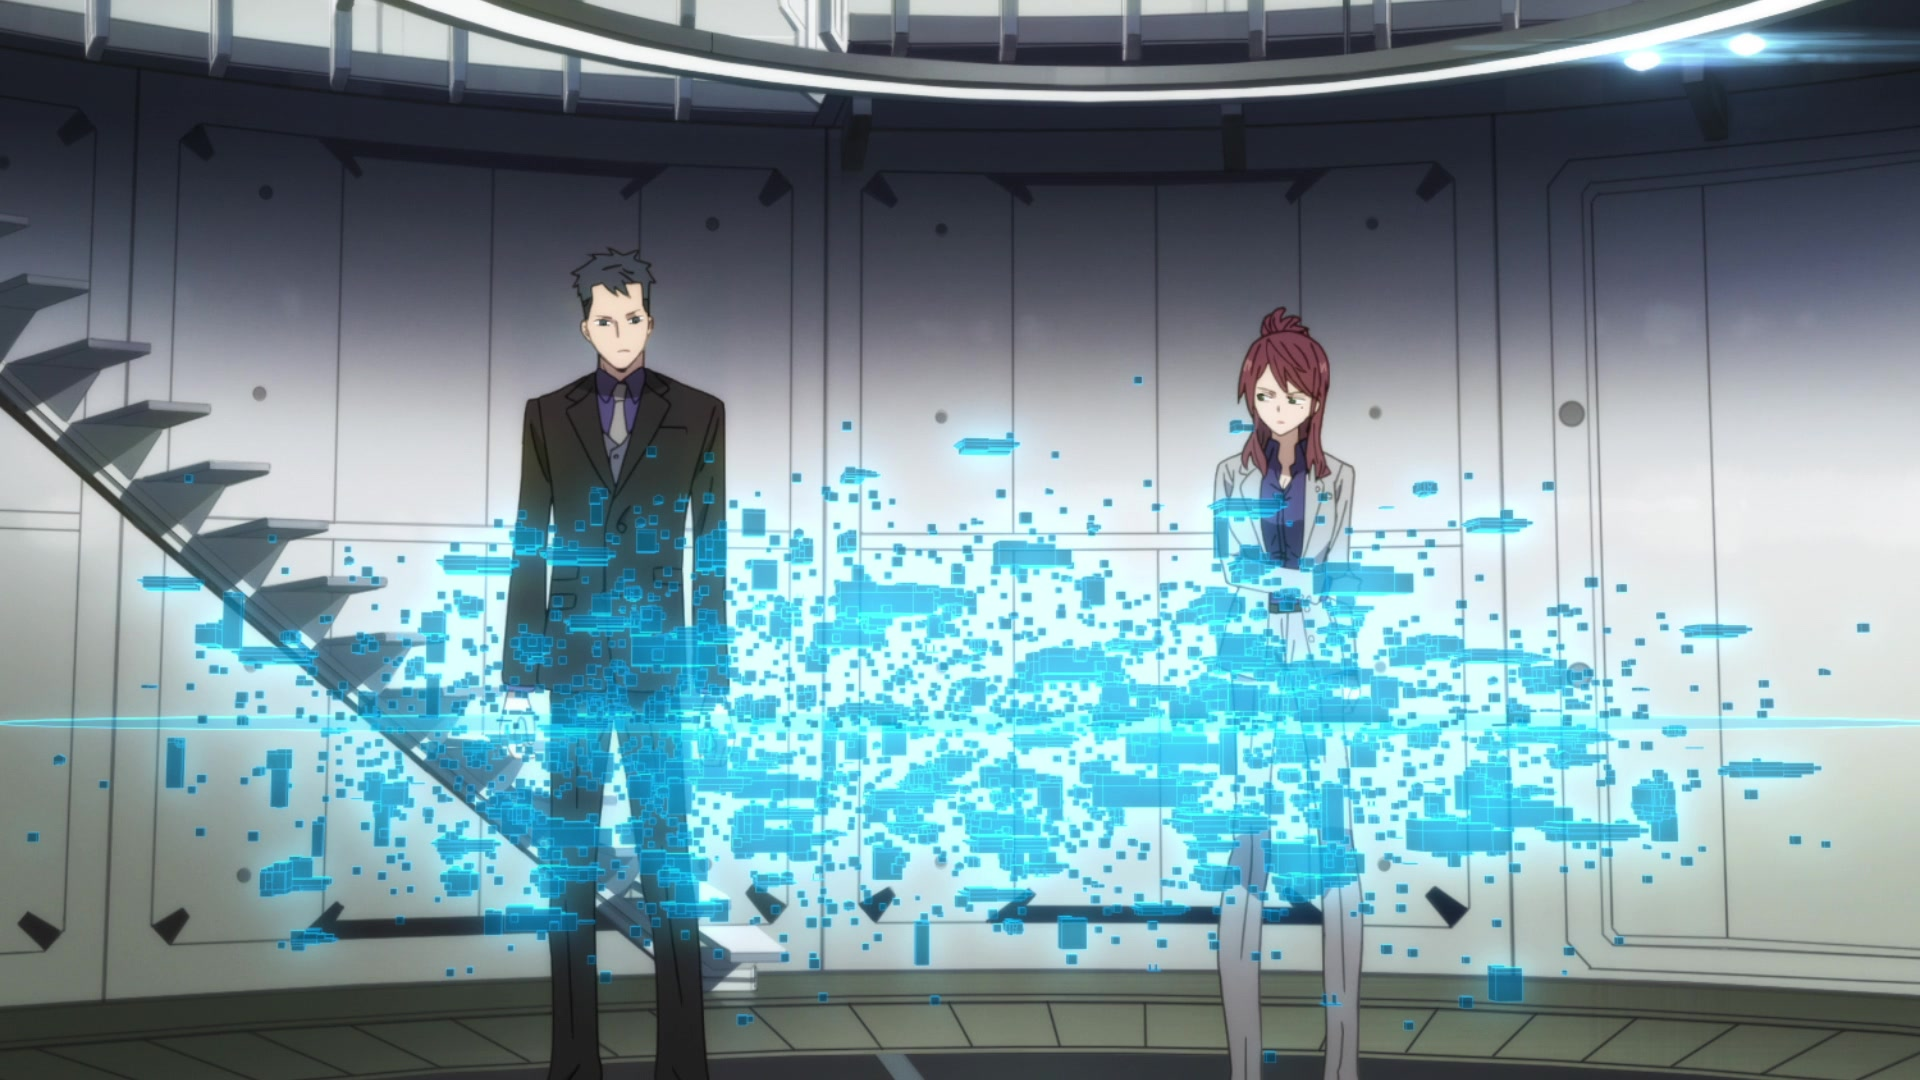 id-invaded-anime-episode-1-image-0230.jpg